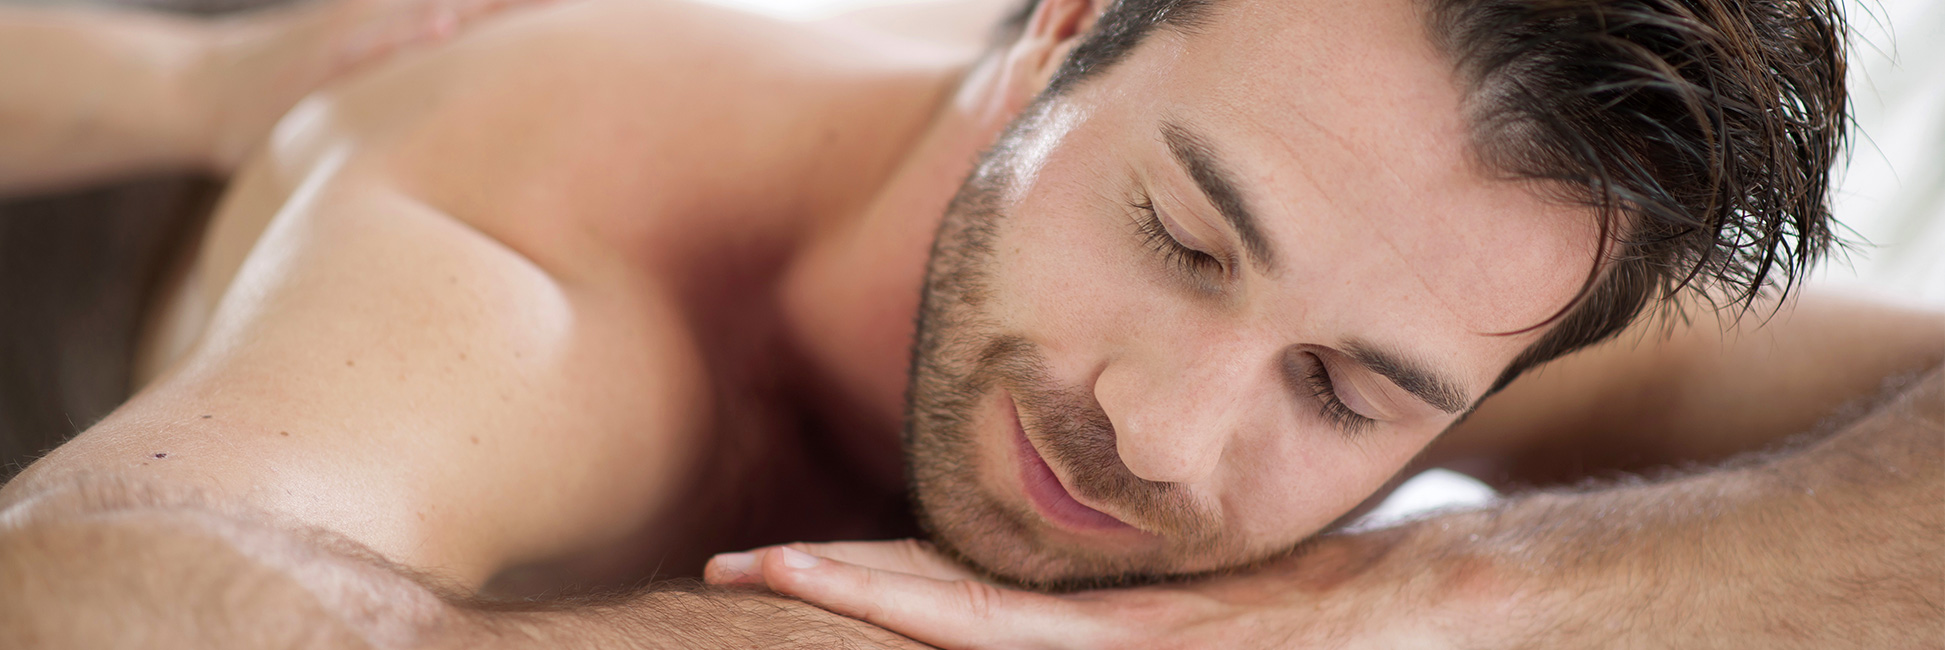 Hotel Gasthof zur Post men relaxing massage T: We offer special treatments for men.